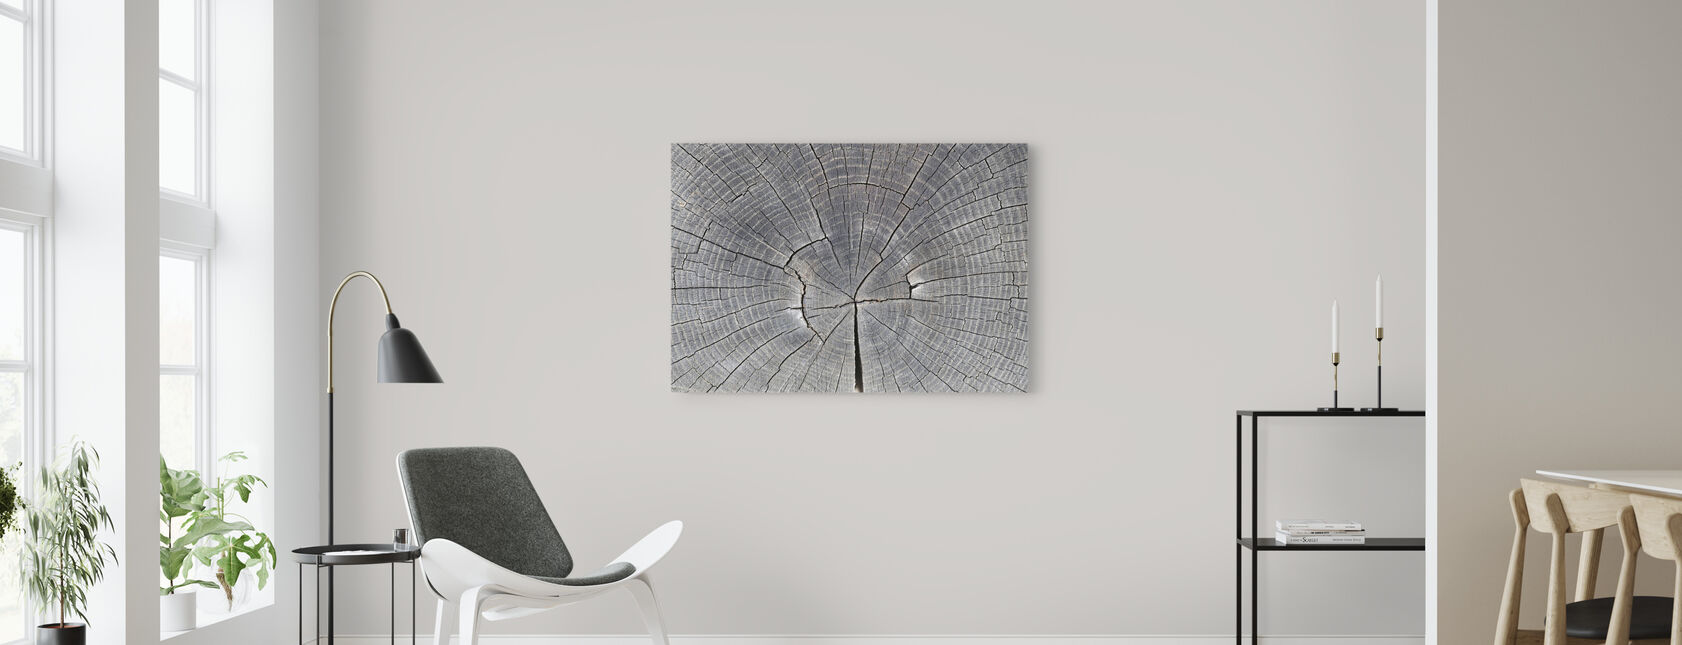 Tree Trunk Showing Growth Rings - Canvas print - Living Room